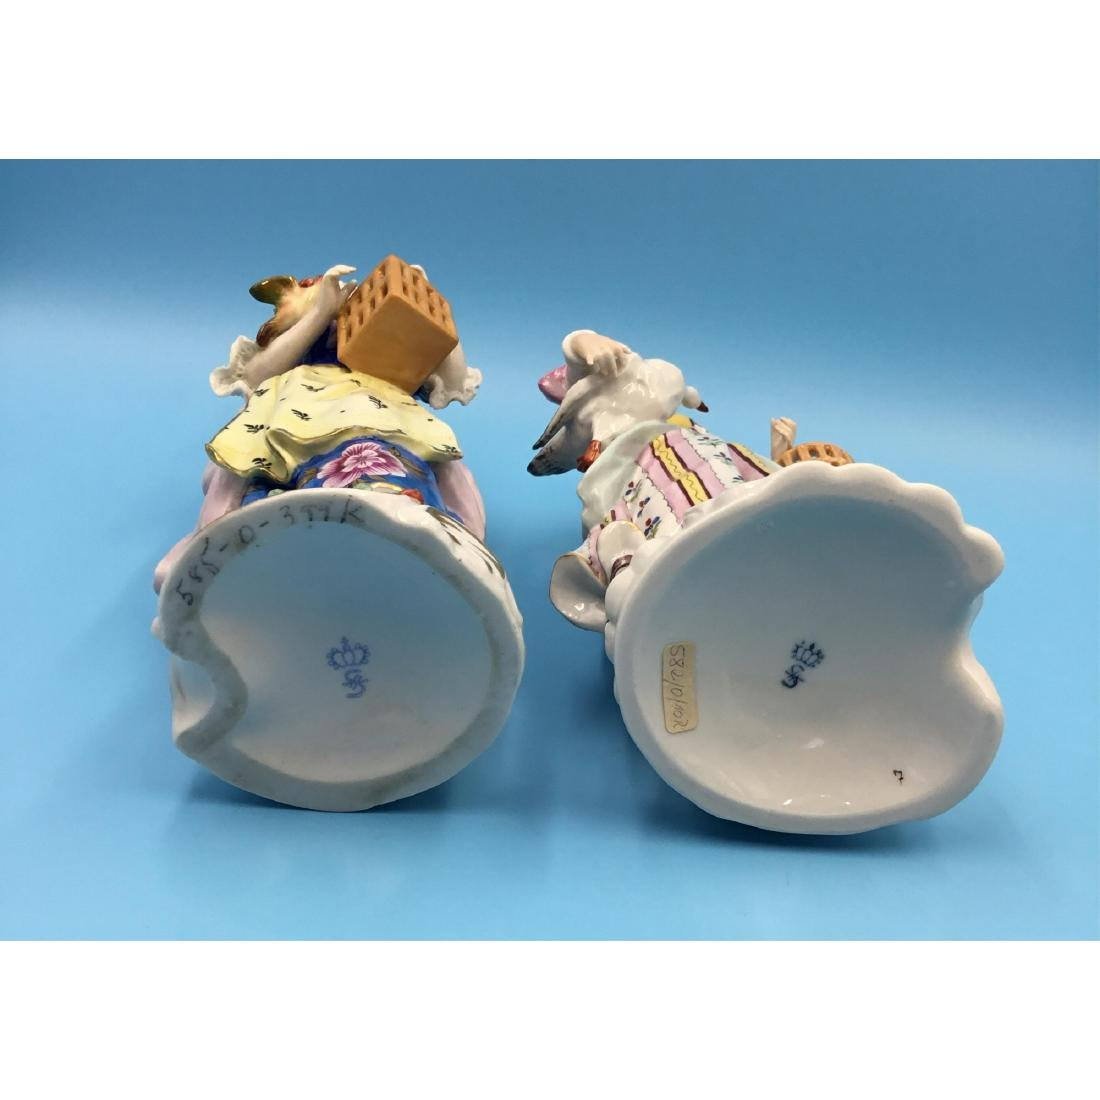 PAIR OF SITZENDORF GERMAN PORCELAIN FIGURINES - 5